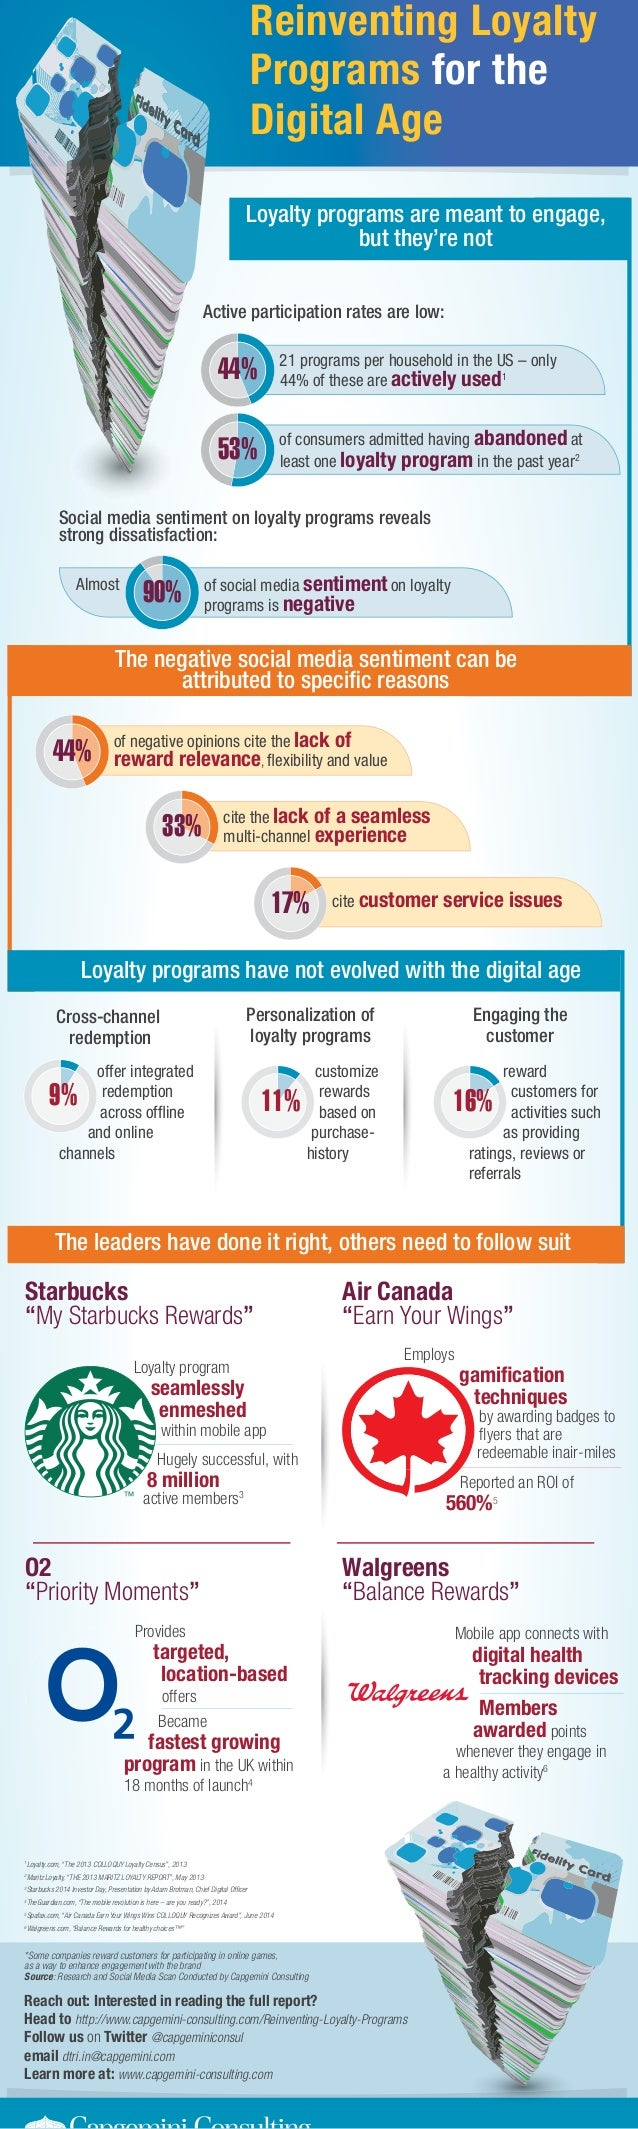 Reach out: Interested in reading the full report? Head to http://www.capgemini-consulting.com/Reinventing-Loyalty-Programs...